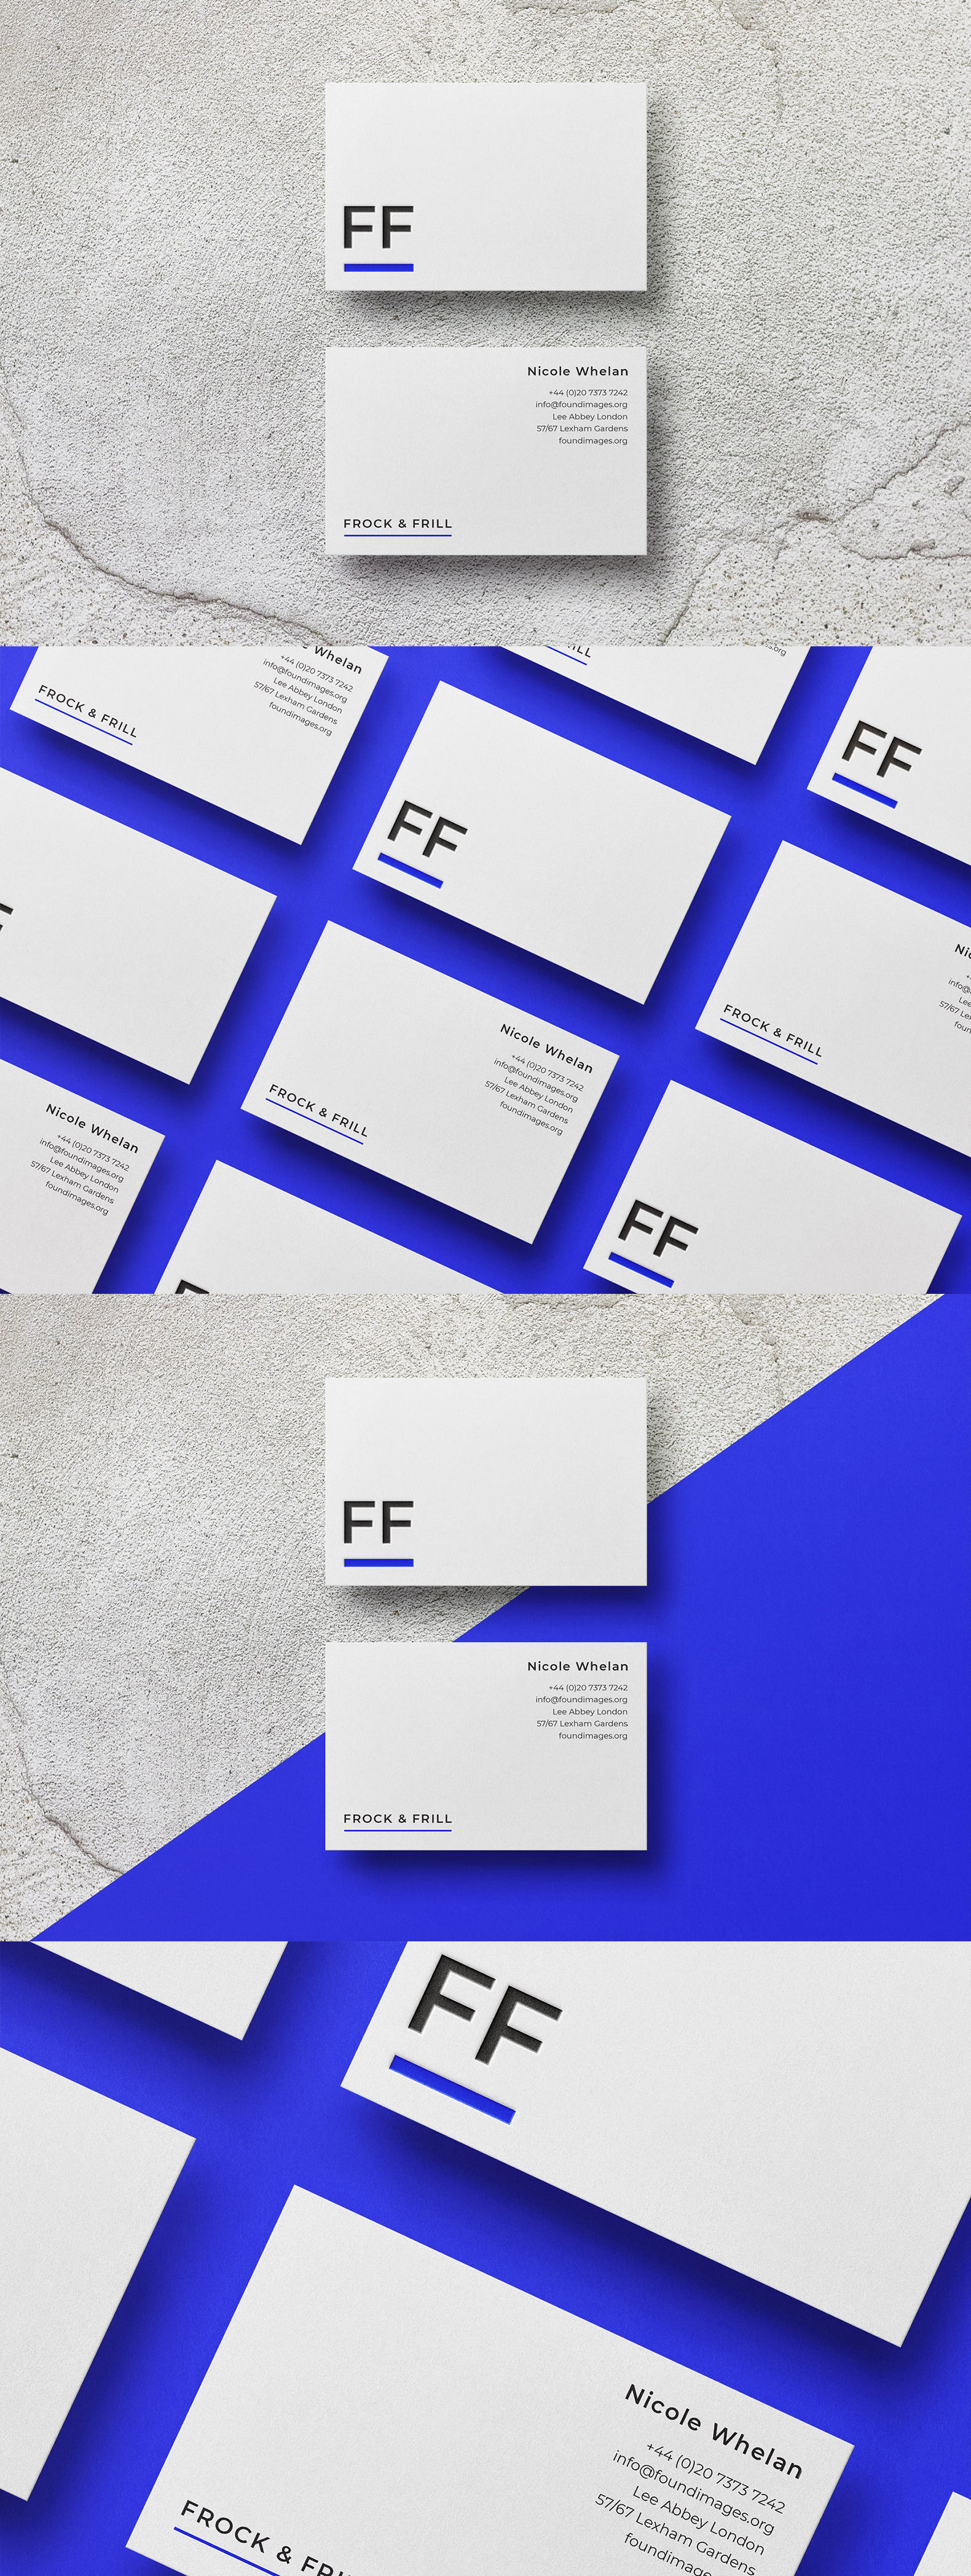 Download 3d Business Card Mockup Psd Free Download Download Free And Premium Psd Mockup Templates And Design Assets PSD Mockup Templates